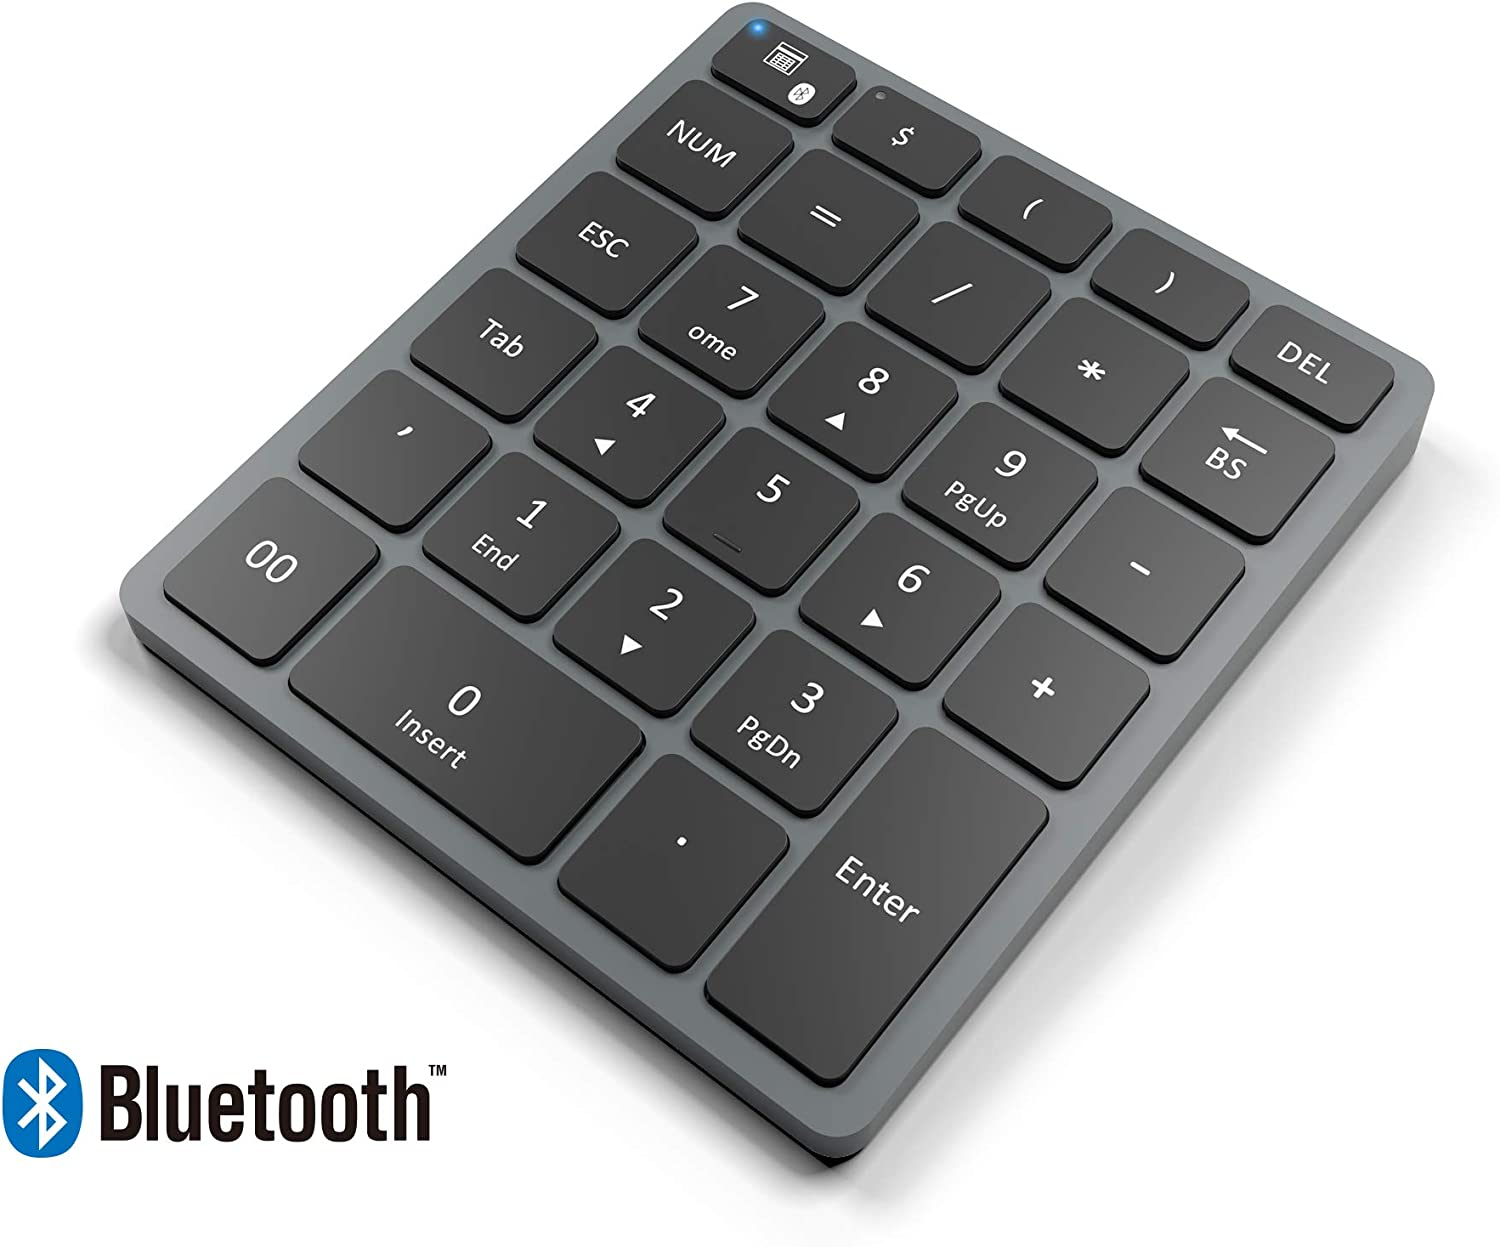 Bawanfa Teclado numérico inalámbrico Bluetooth, Delgado Portátil Numérico Inalámbrico Bluetooth Recargable 28 Teclas de tecladopara Data Entry de Contabilidad financierapara, para PC y portátiles